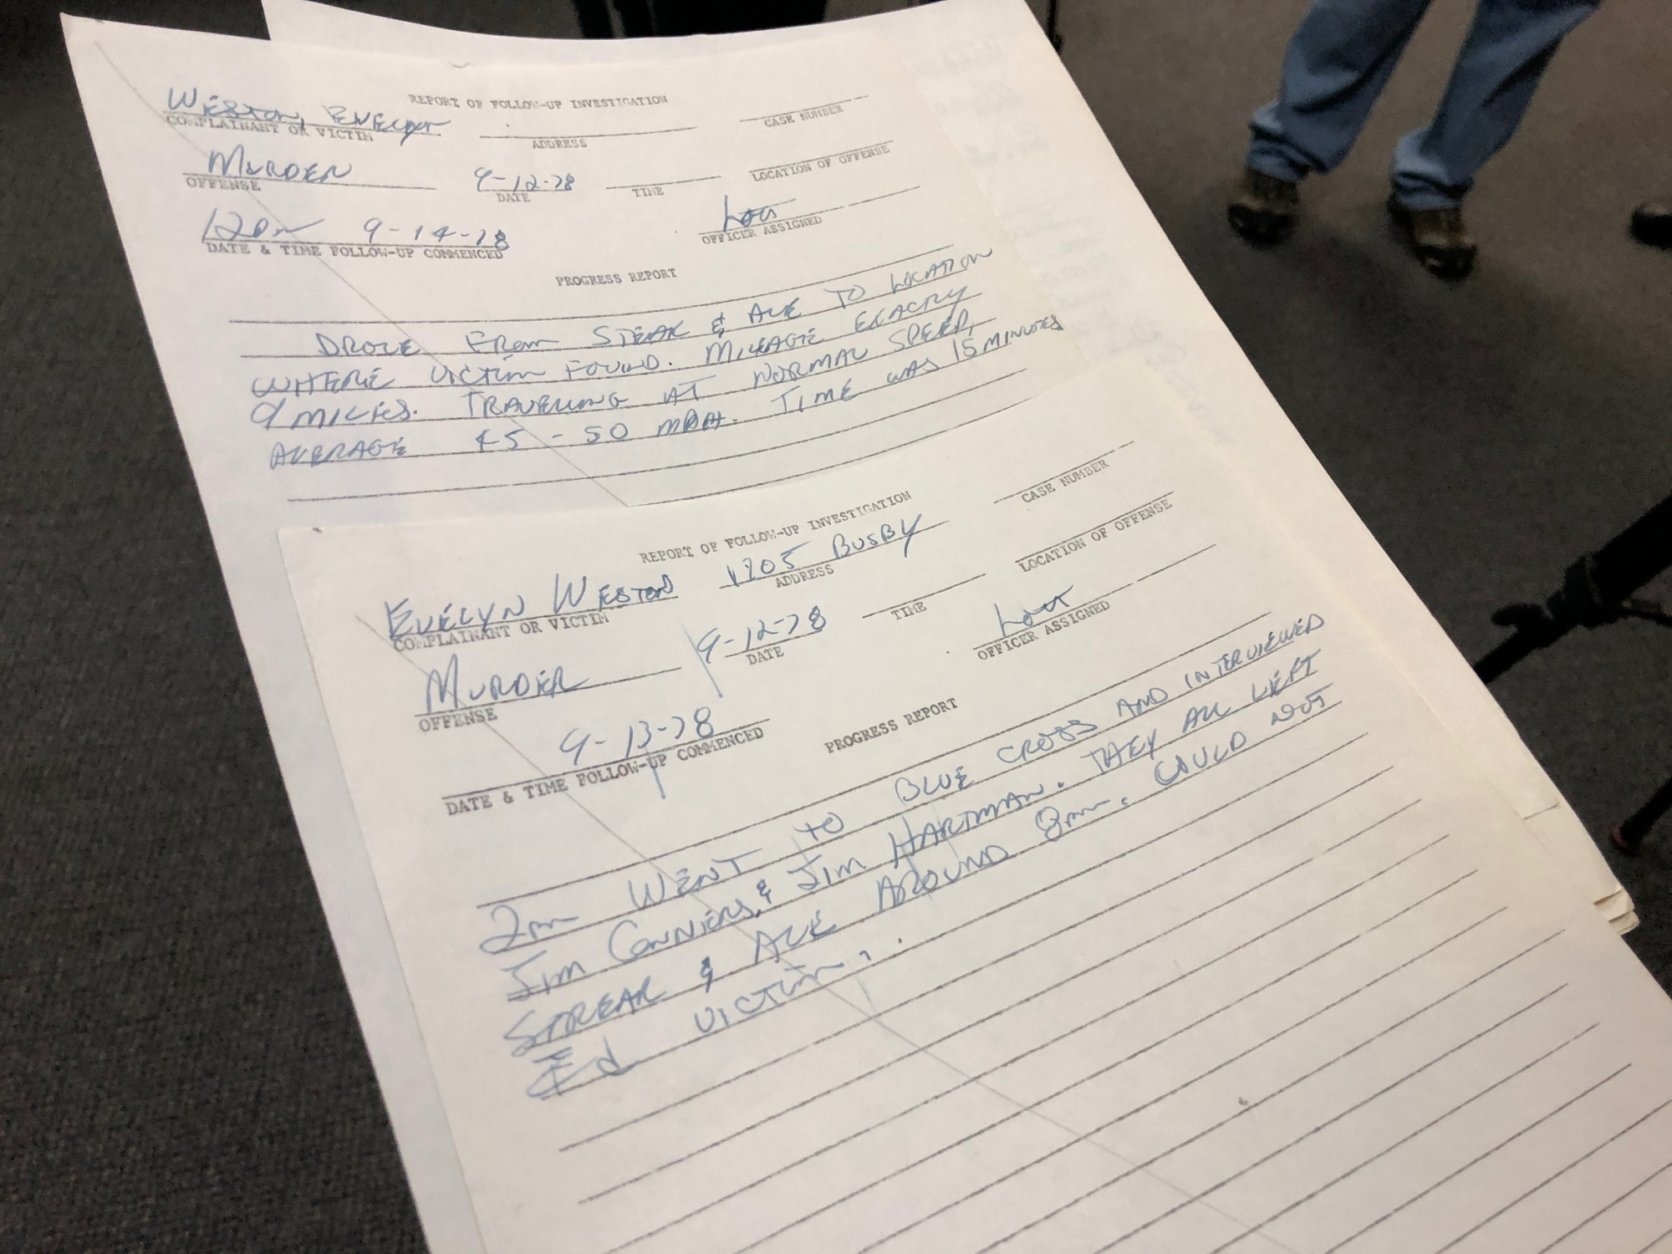 Richland County Sheriff Leon Lott's handwritten notes from the 1978 killing of Evelyn Weston are shown Wednesday, Nov. 21, 2018, in Columbia, South Carolina. Weston was likely killed by Samuel Little, who investigators say has confessed to as many as 90 killings across the United States. Lott was a rookie investigator assigned Weston's death and said he never forgot the case.  (AP Photo/Jeffrey Collins)